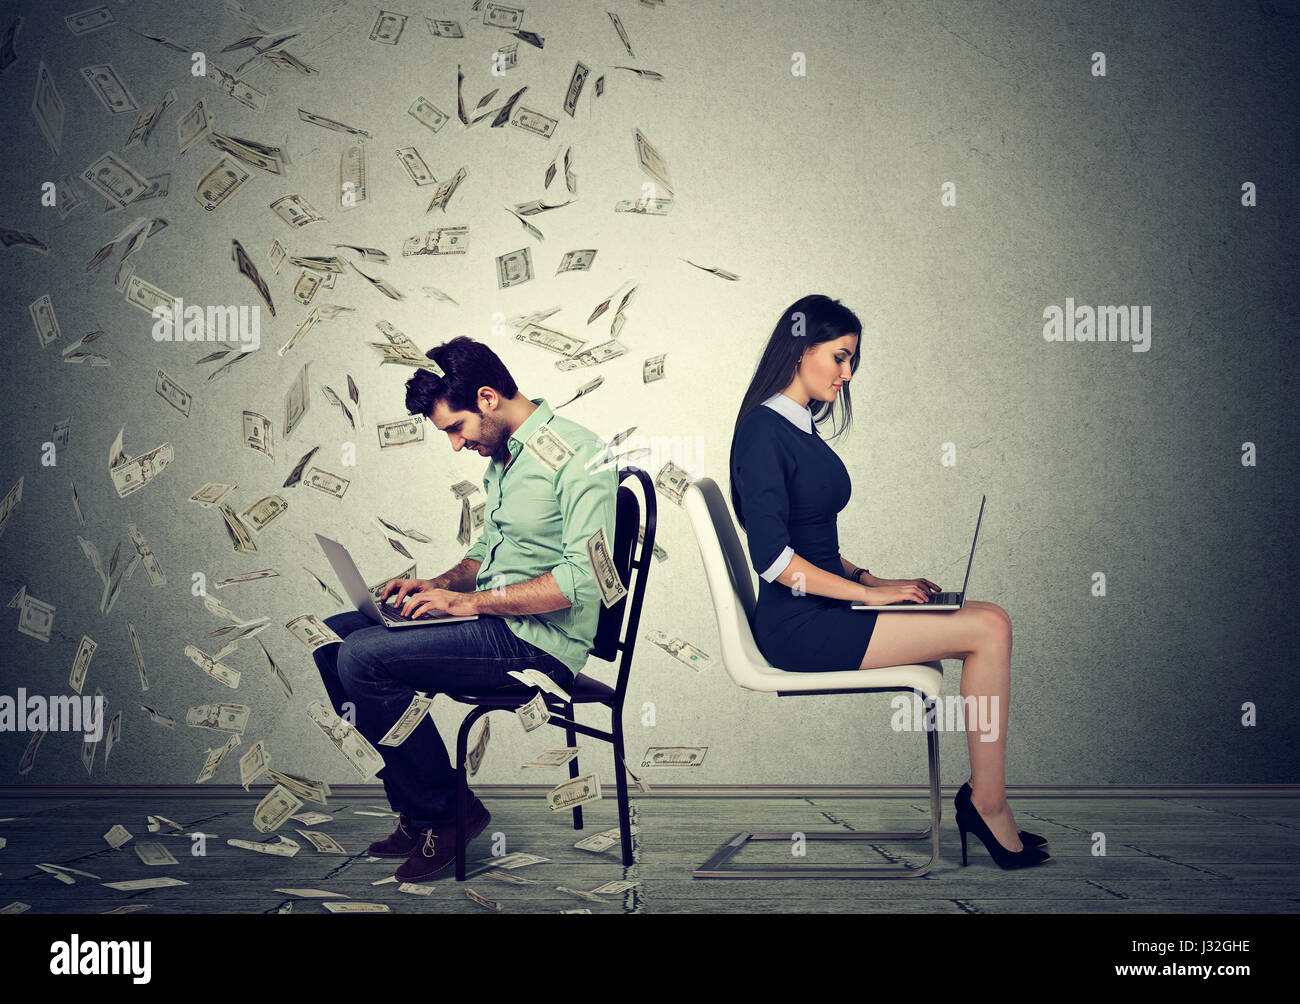 Employee compensation economy concept. Woman working on laptop sitting next to young man under money rain. Pay difference - Stock Image